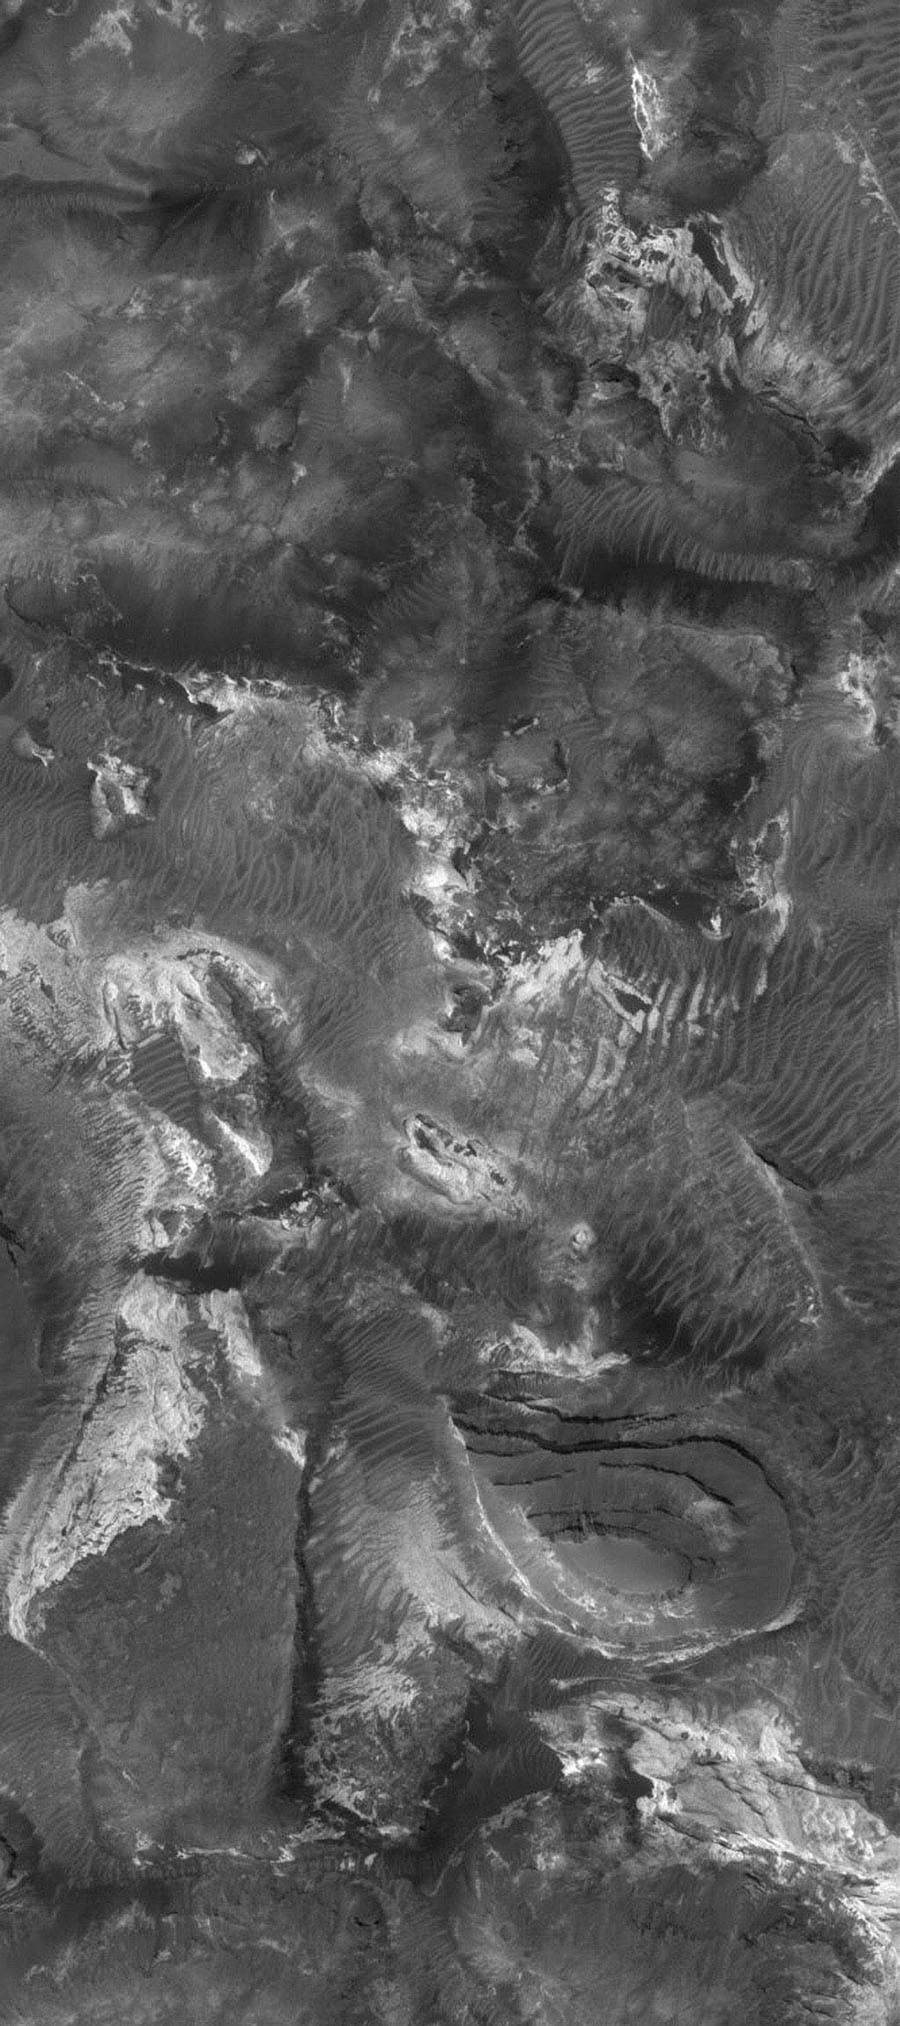 NASA's Mars Global Surveyor shows light-toned rock outcrops, mesas, and buttes in Aram Chaos on Mars. Located immediately west of Ares Vallis, Aram Chaos is a large, nearly-filled impact basin.